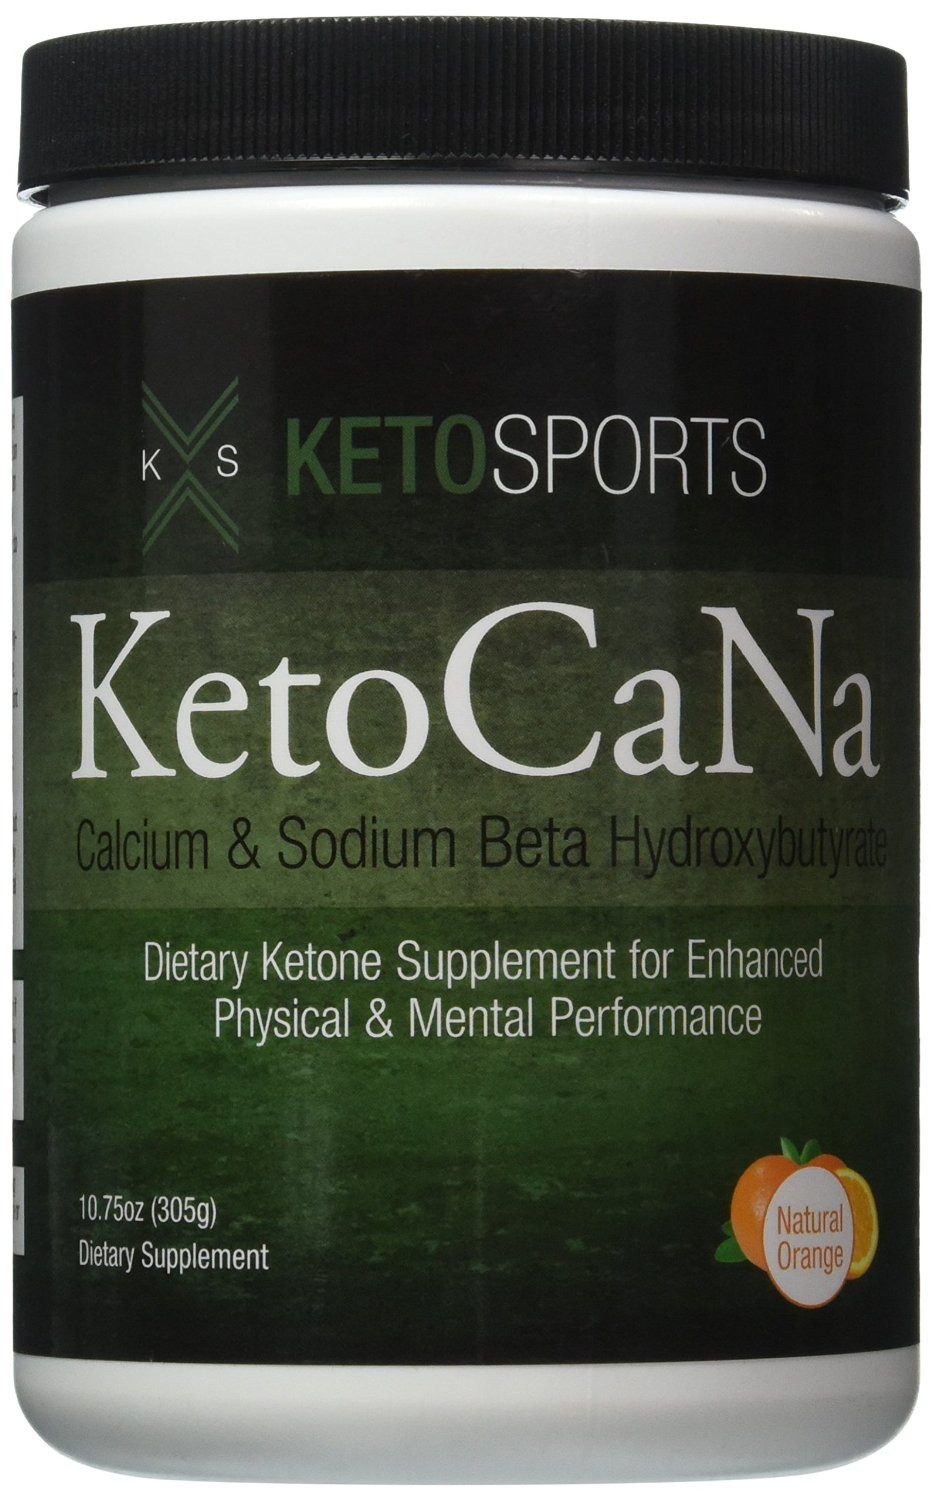 Keto CaNa Review Get The Focus And Energy You Need